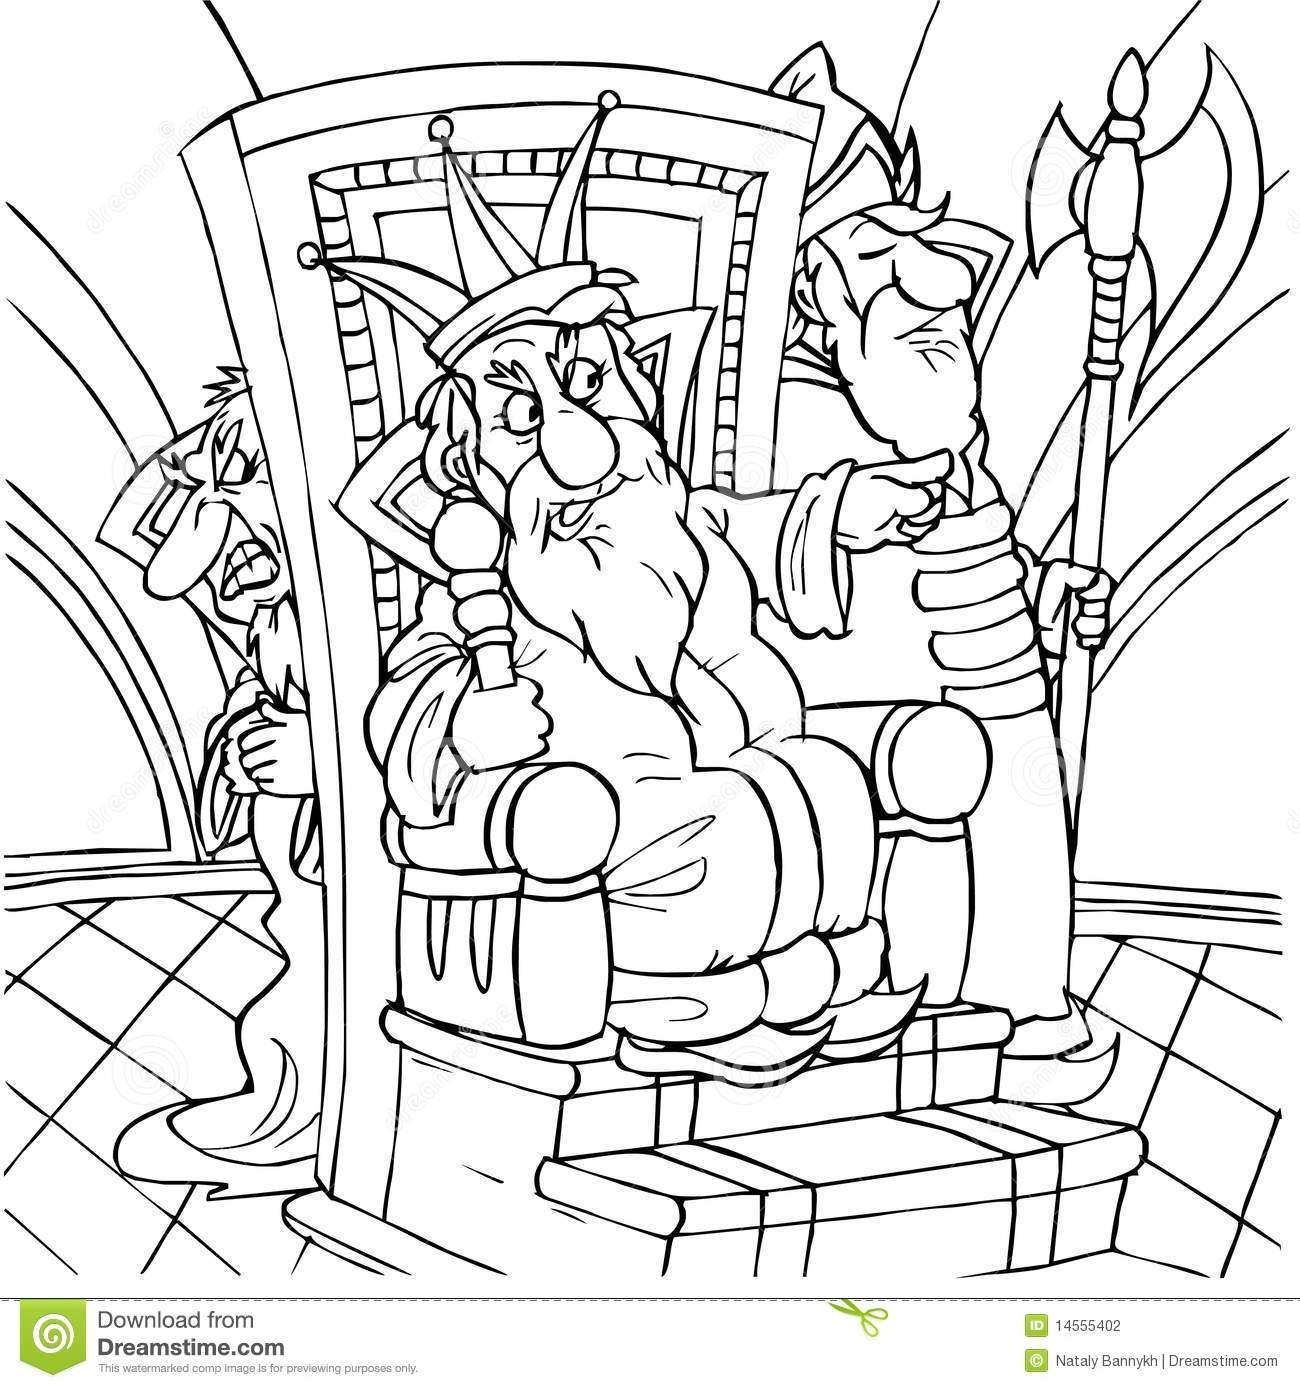 david on the throne coloring pages | King stock illustration. Illustration of childhood ...